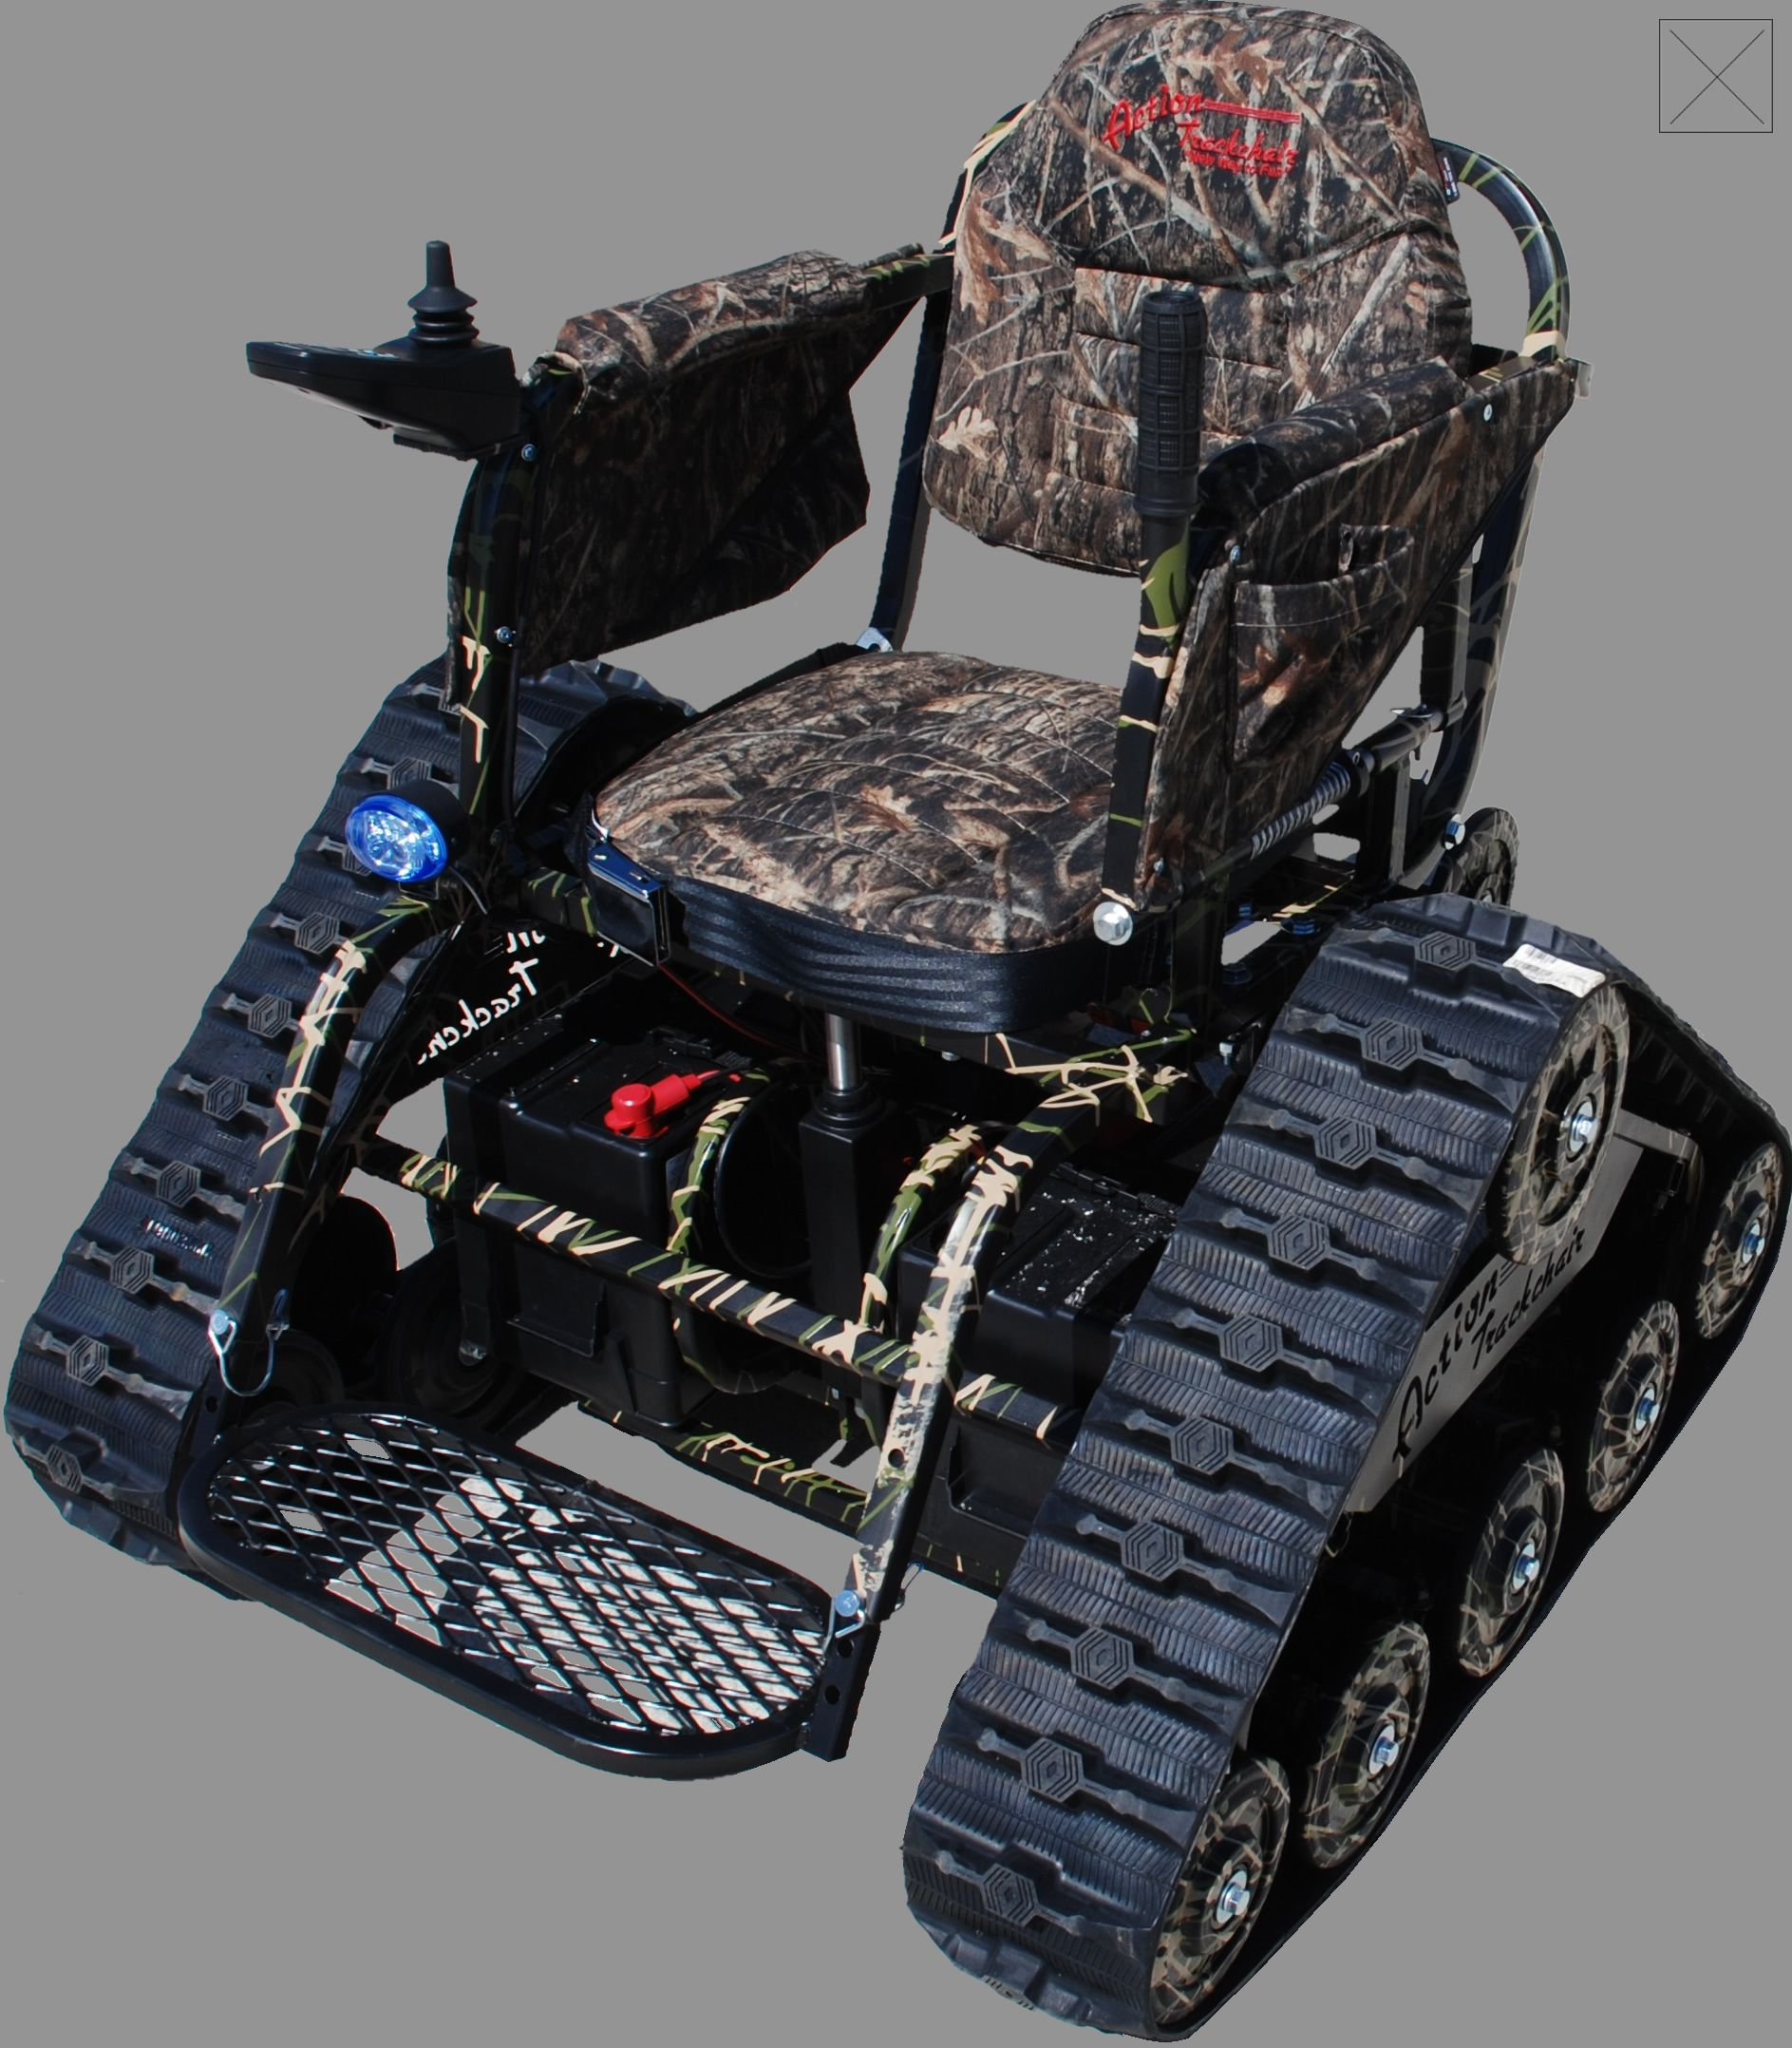 Action Track Chair All Terrain Vehicle From Woundedwarriorsinaction Org Yes This Is A Real Product